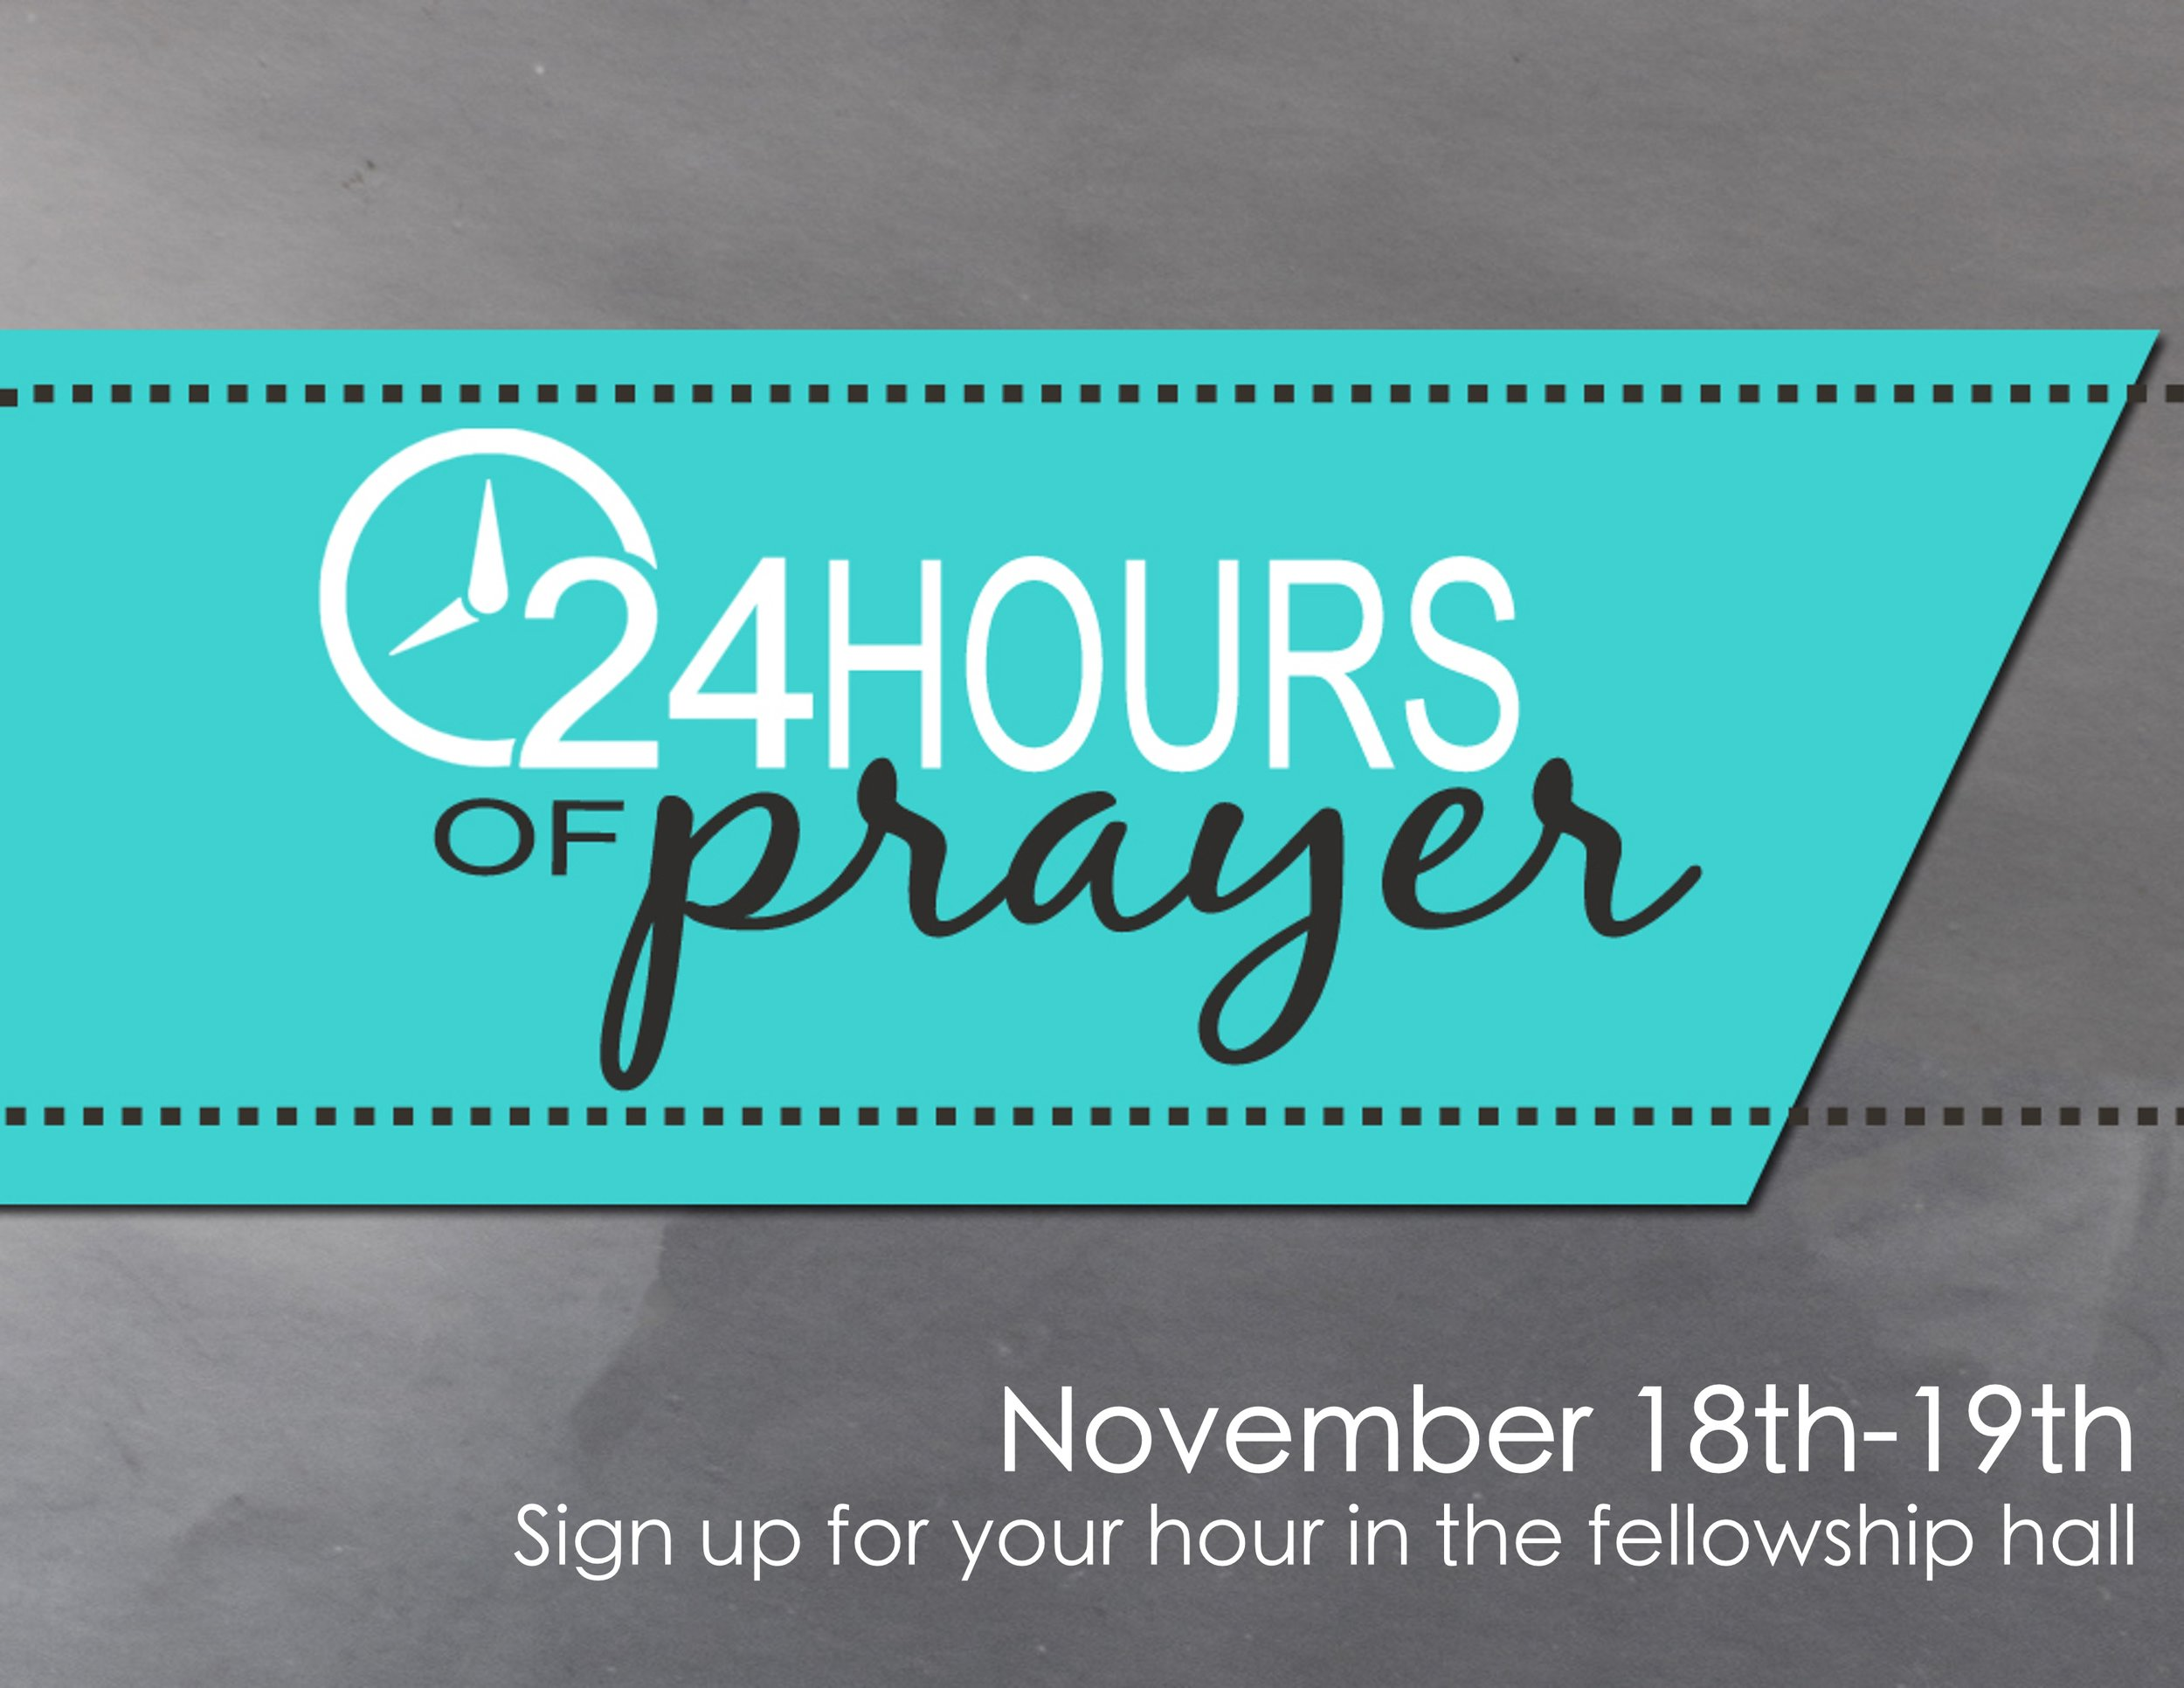 Be a part of a prayer chain that lasts for 24 hours. We will be focusing on healing, but you can also use that time to pray for whatever is on your heart. Sign up for your hour to pray in the fellowship hall. You can pray from wherever you are - work, home, school, your car - it's all about setting aside one hour for prayer, and doing it as a community. Please join us!